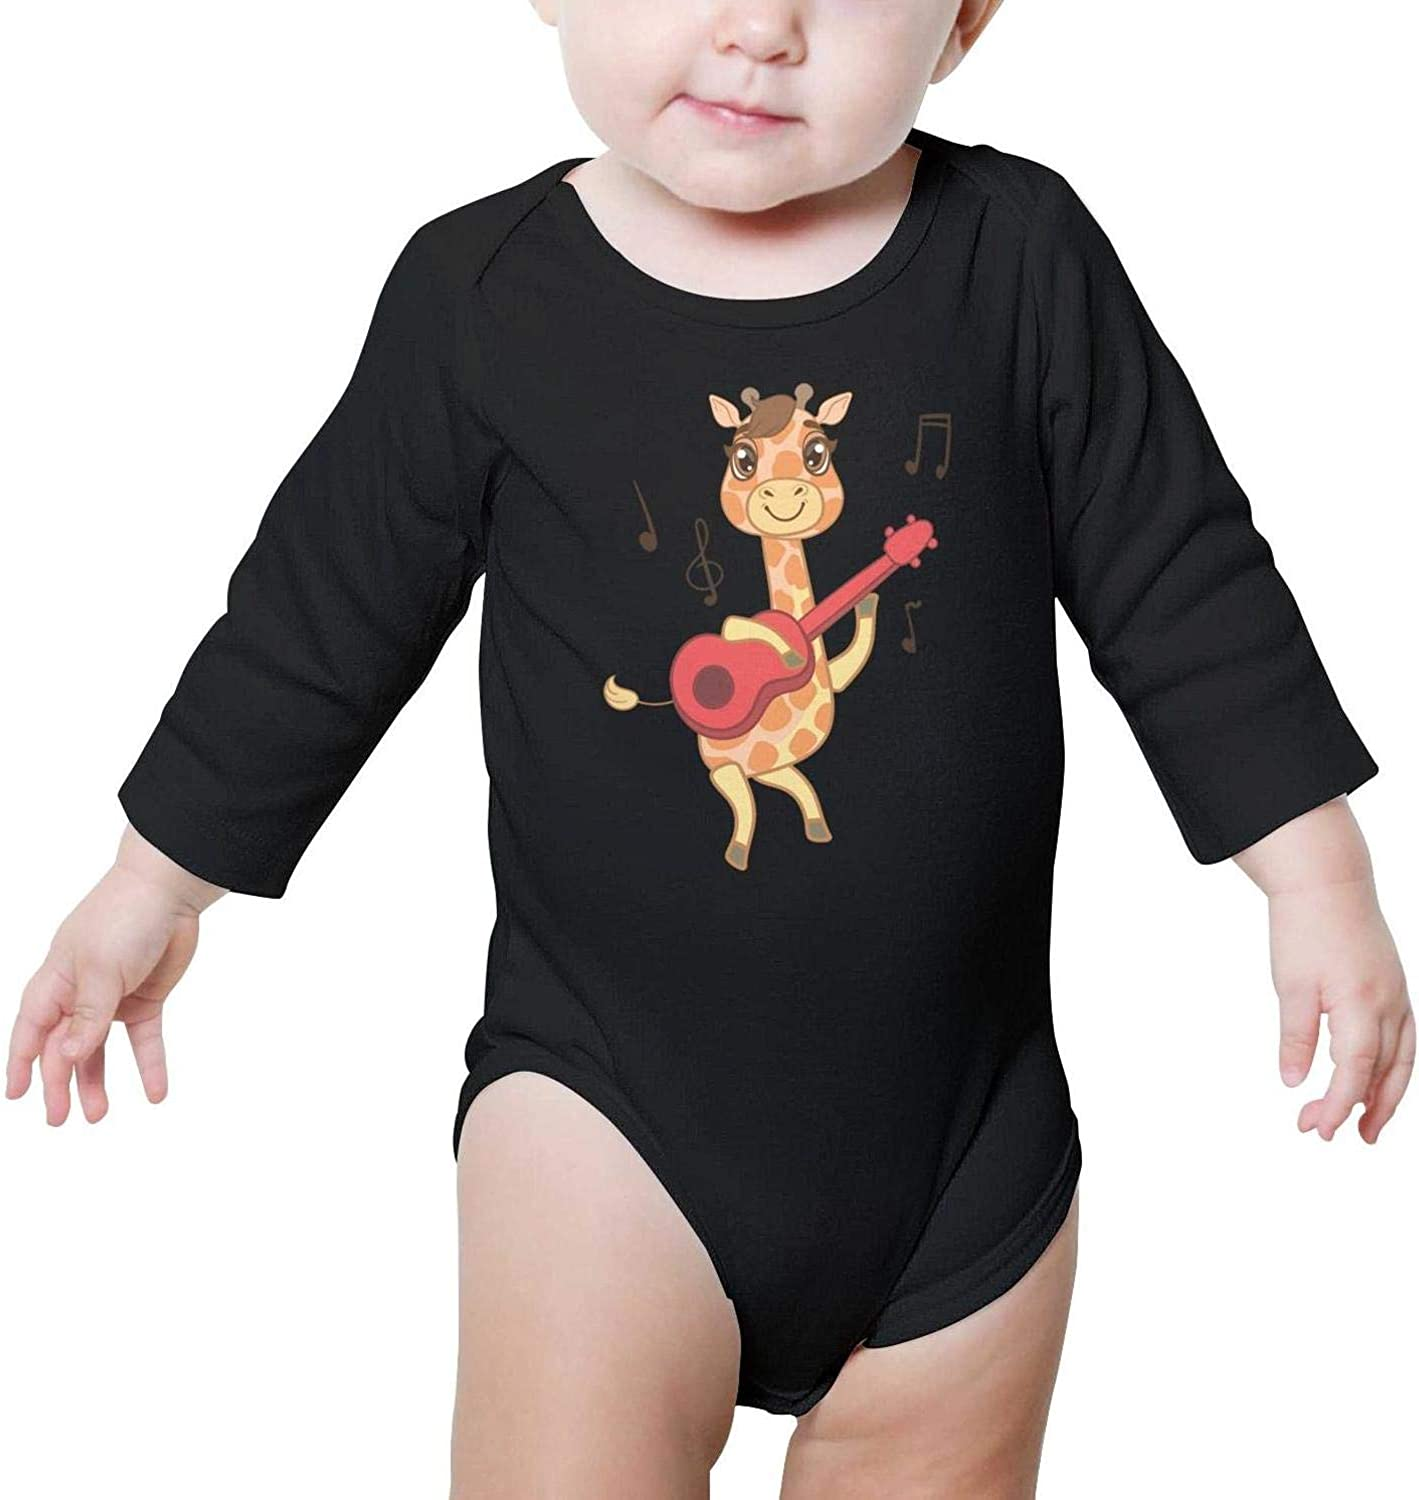 I Love Giraffes1 Baby Outfits Cute Comfortable Baby Long Sleeve Onesies